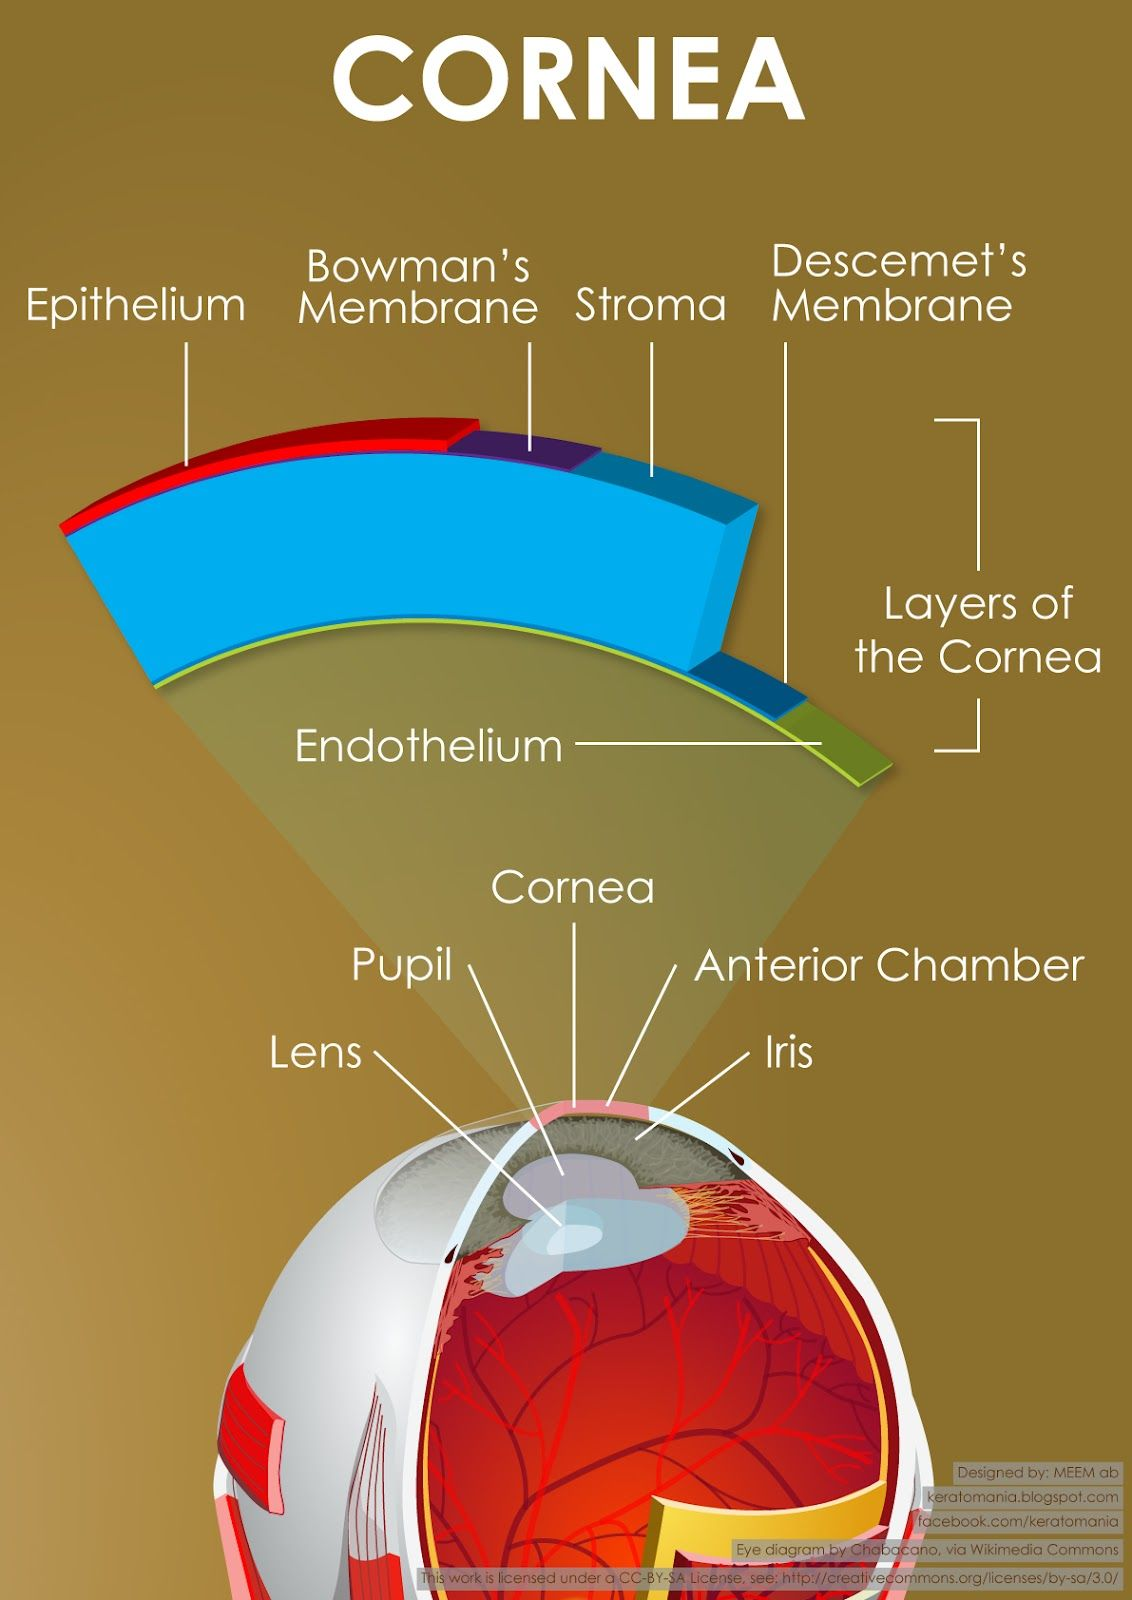 Canine Eye Diagram Double Neck Guitar Wiring A Showing Part Of The Cornea And Its Layers